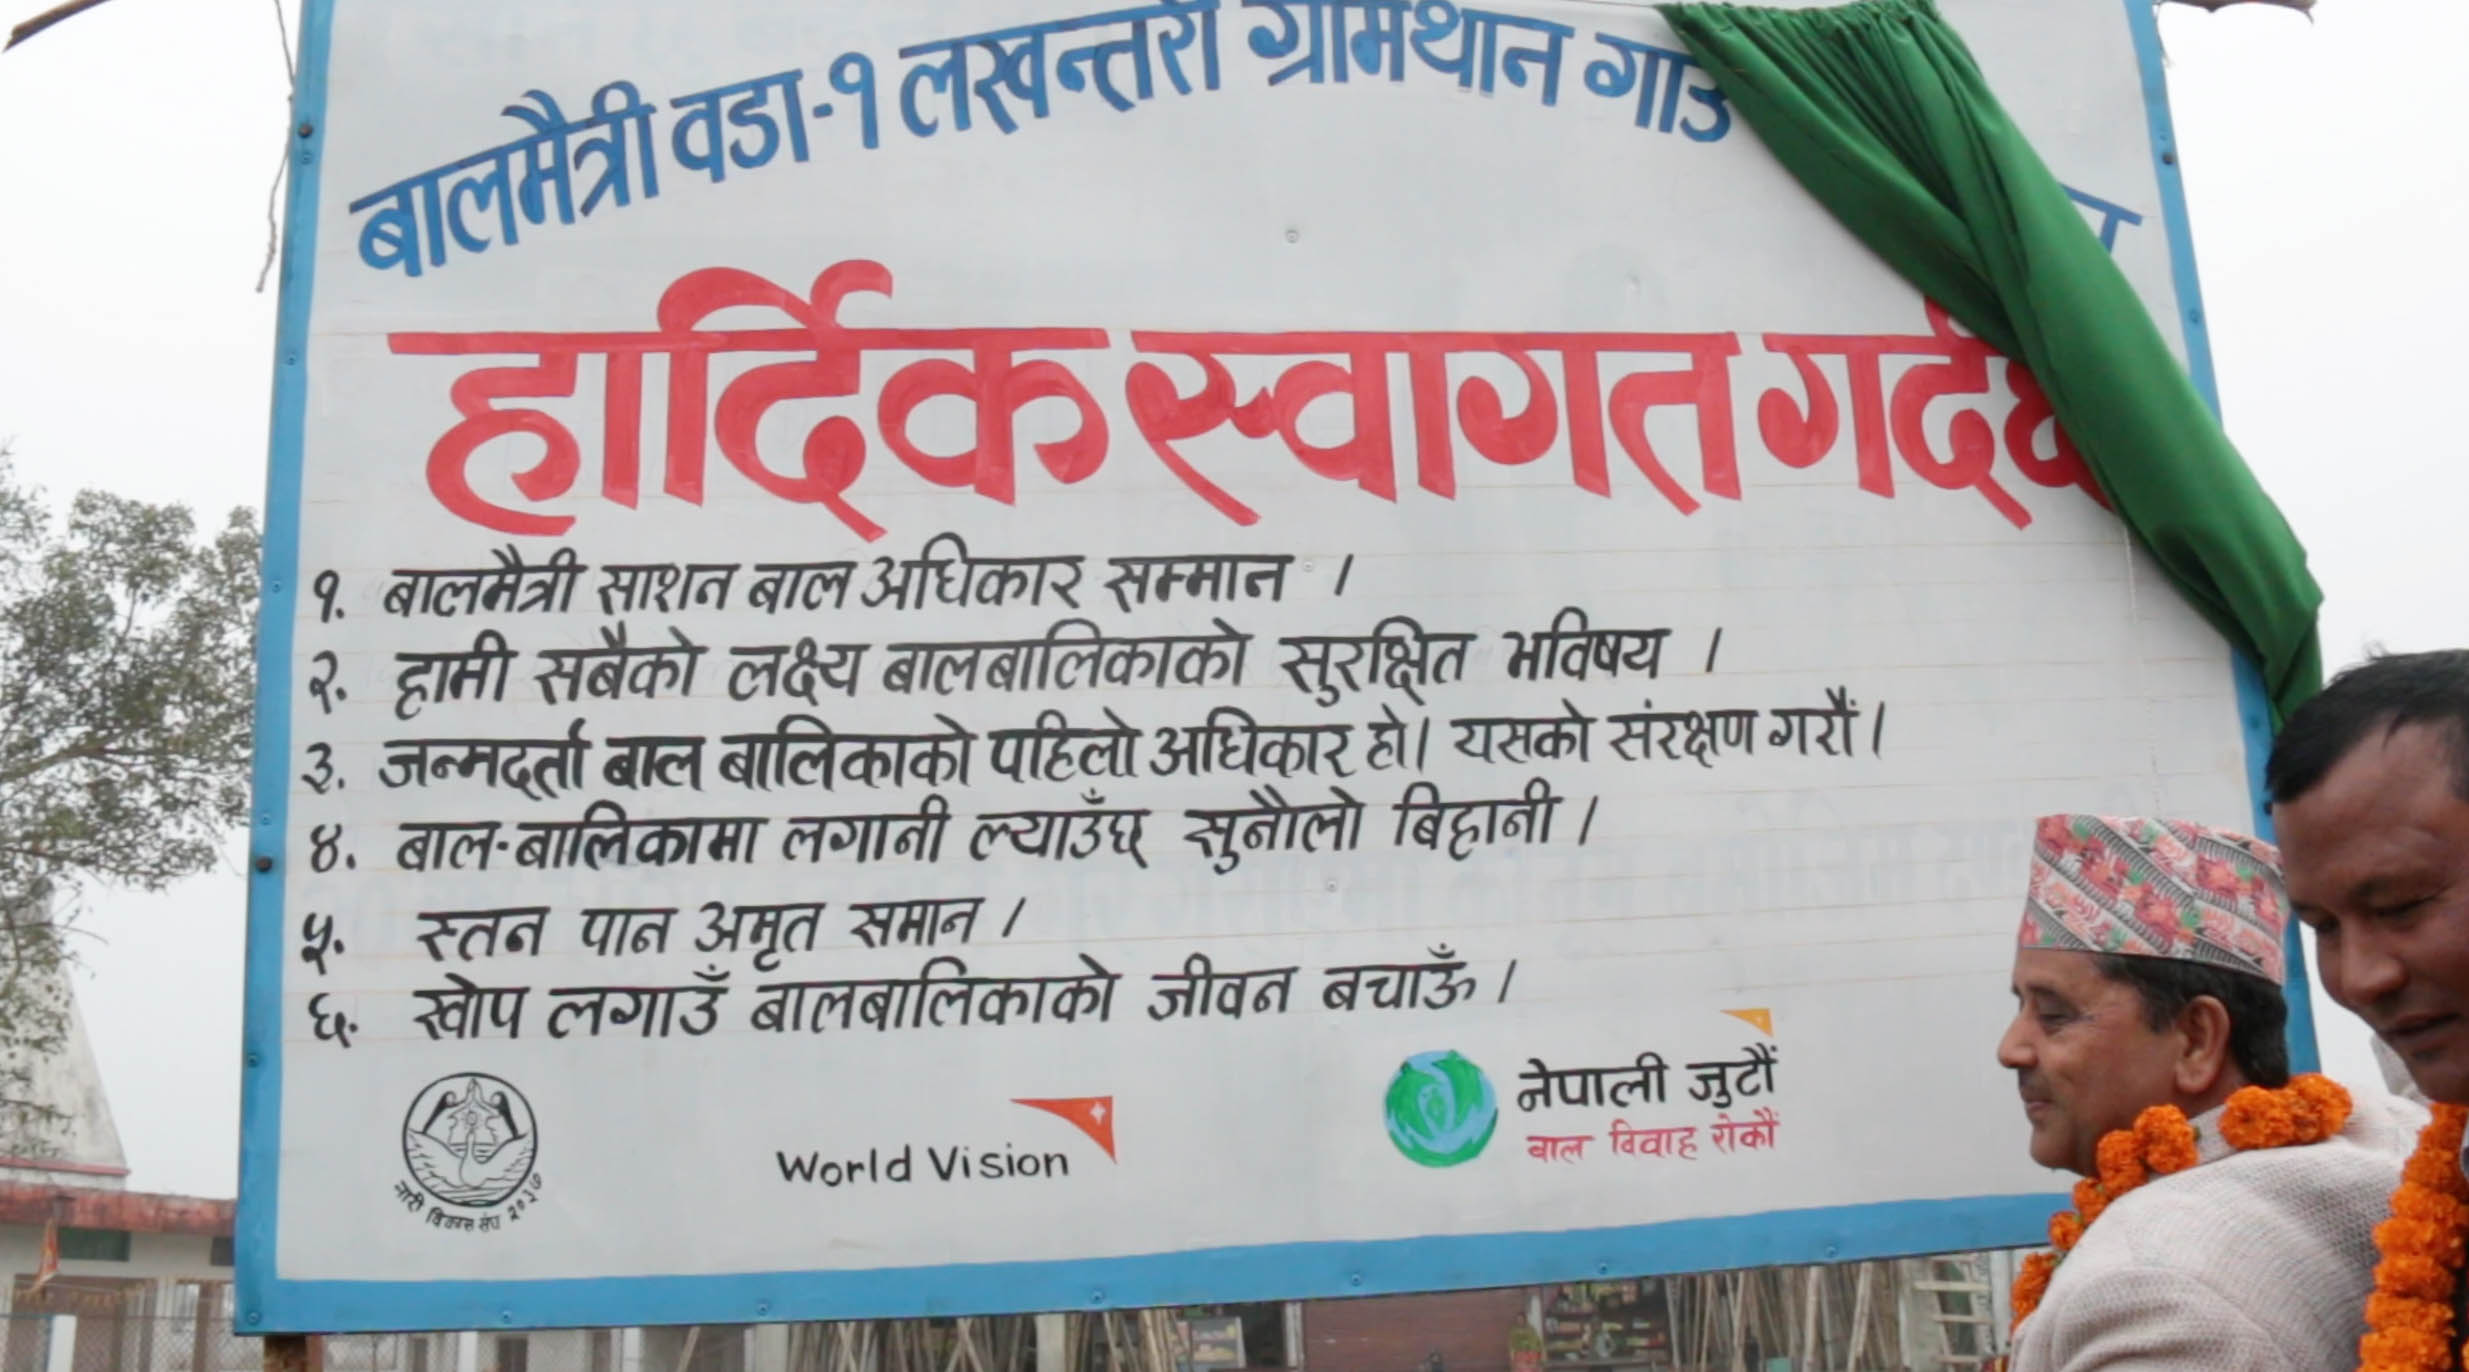 Province 1 Minister for Social Development Jeeevan Ghimire declares Lakhantari-1 as child-friendly ward.